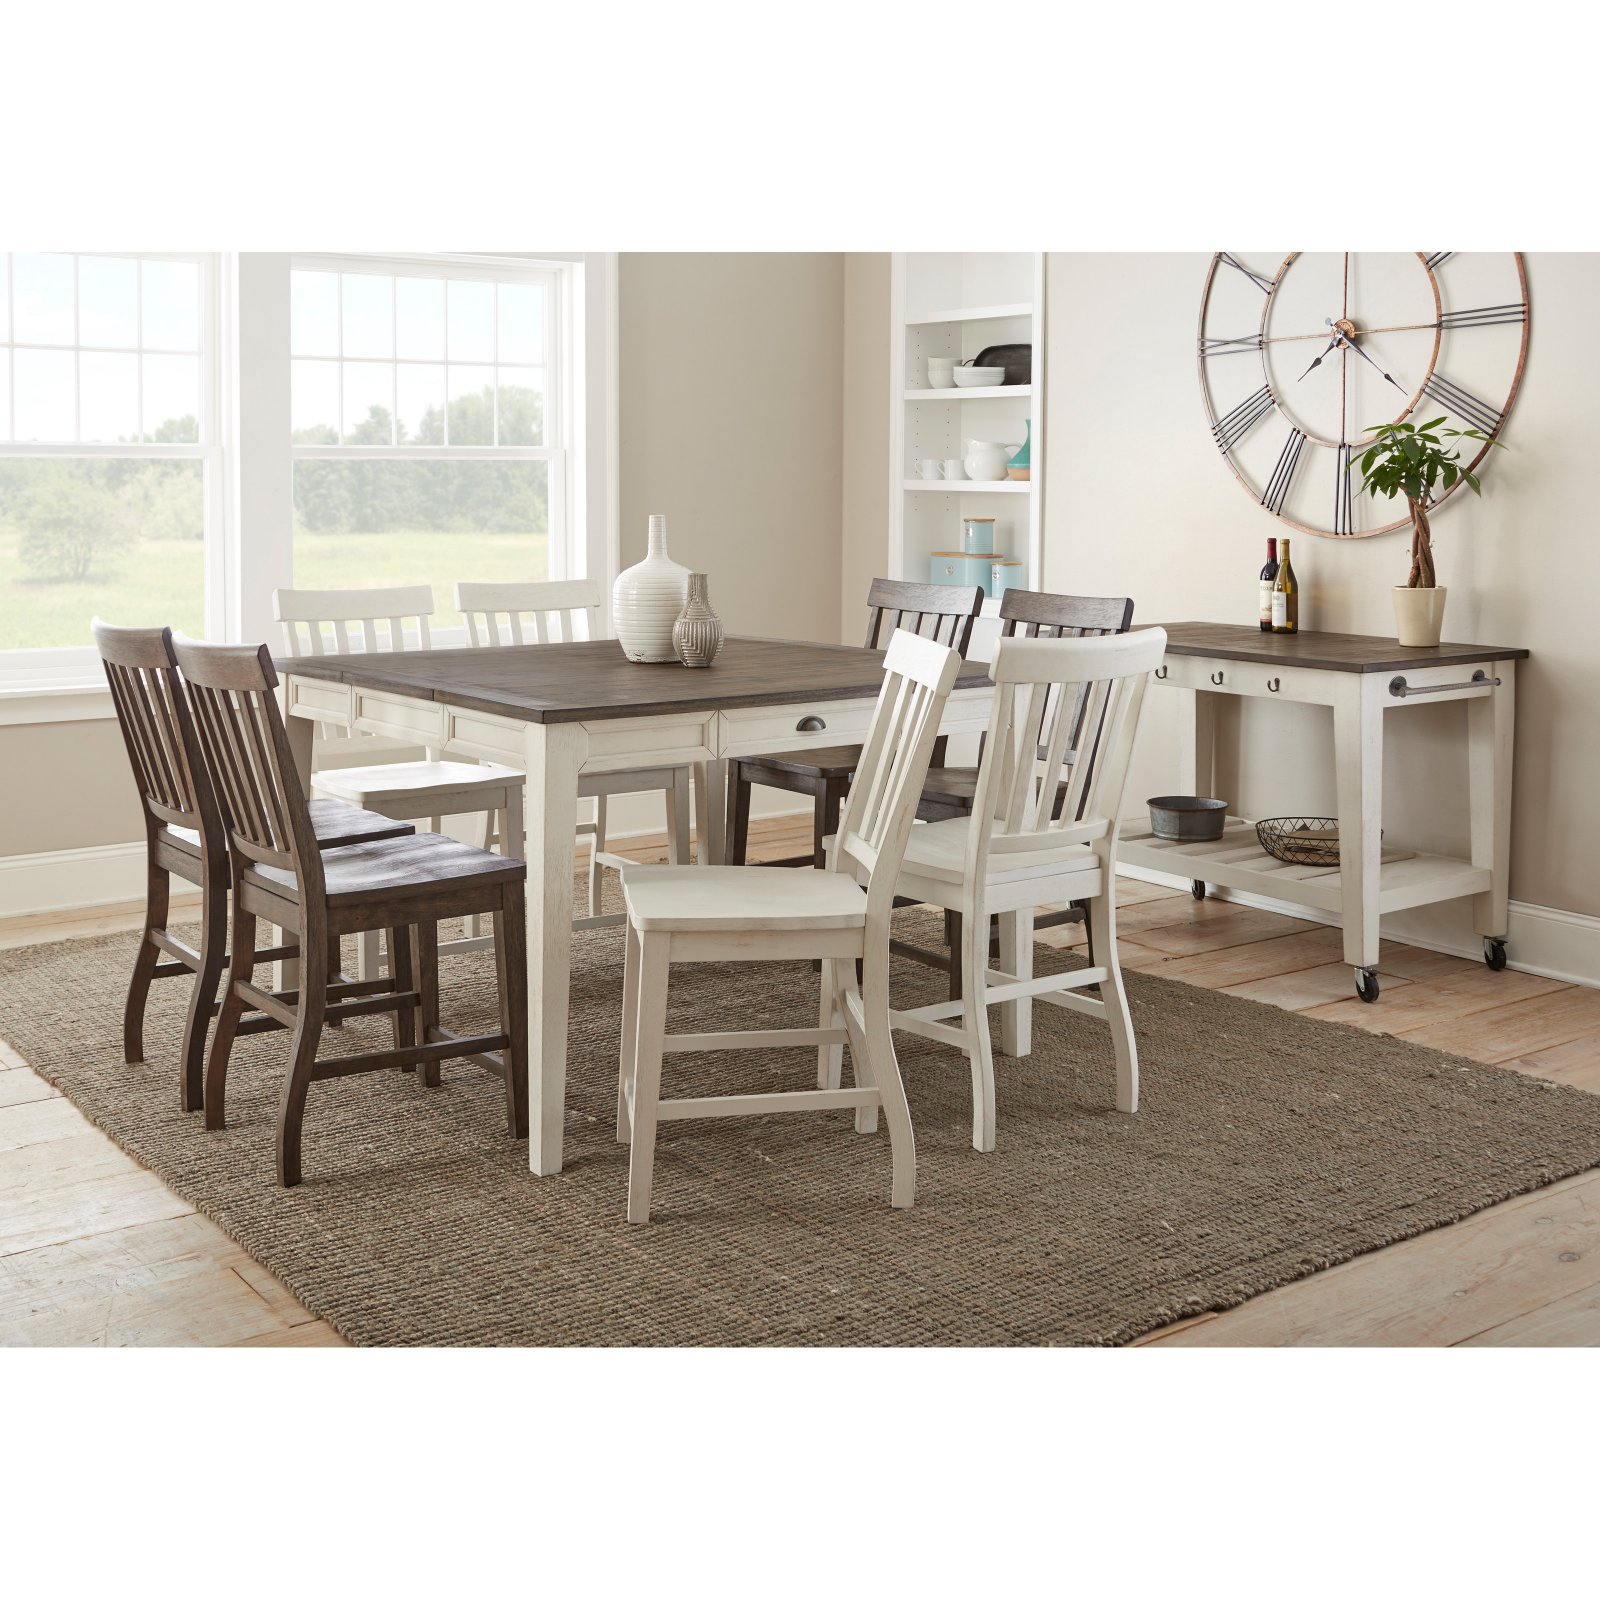 Steve Silver Co. Cayla Counter Height Table with Drawer